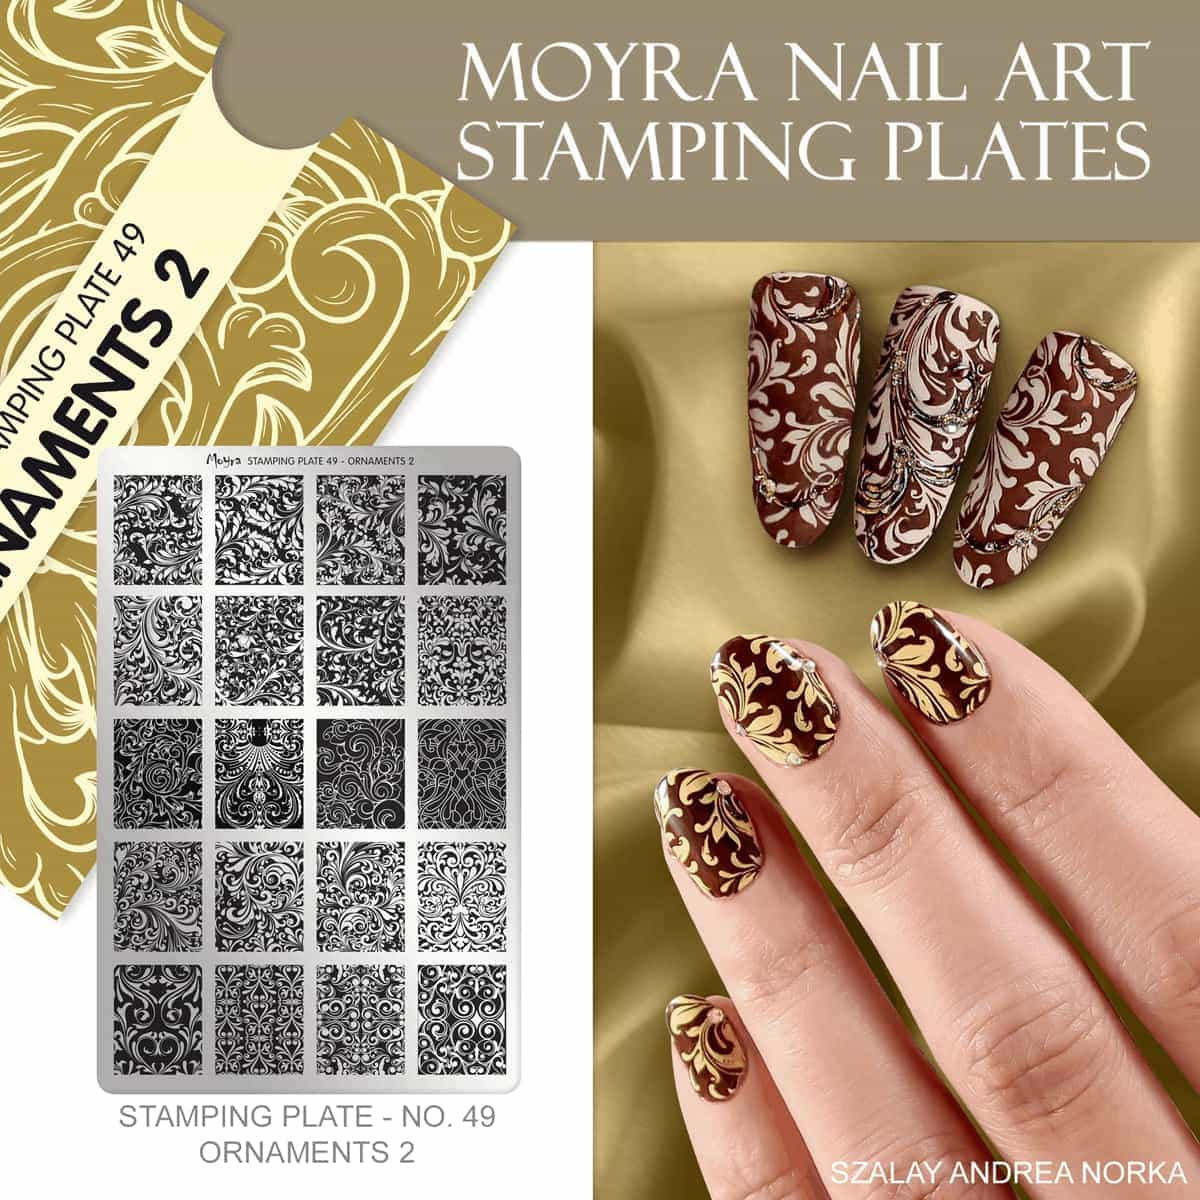 Moyra_stamping_plate_49_ornaments2_arrived